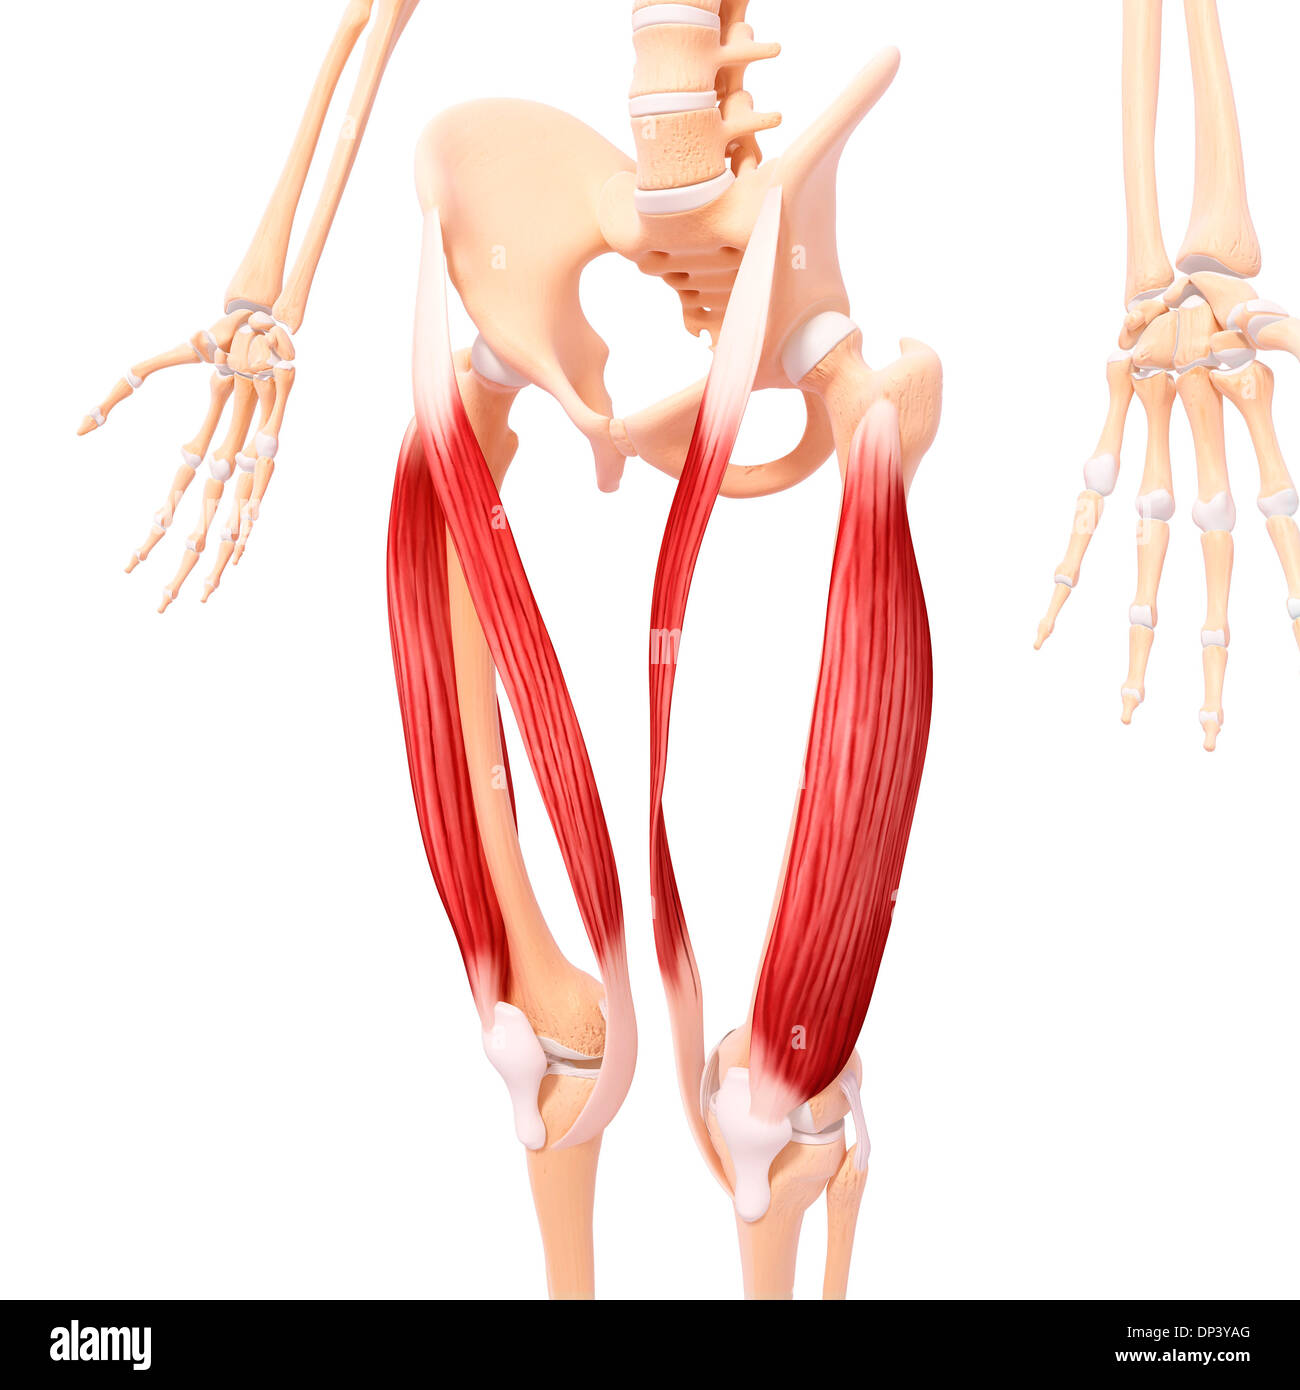 Sartorius Muscle Stock Photos Sartorius Muscle Stock Images Page